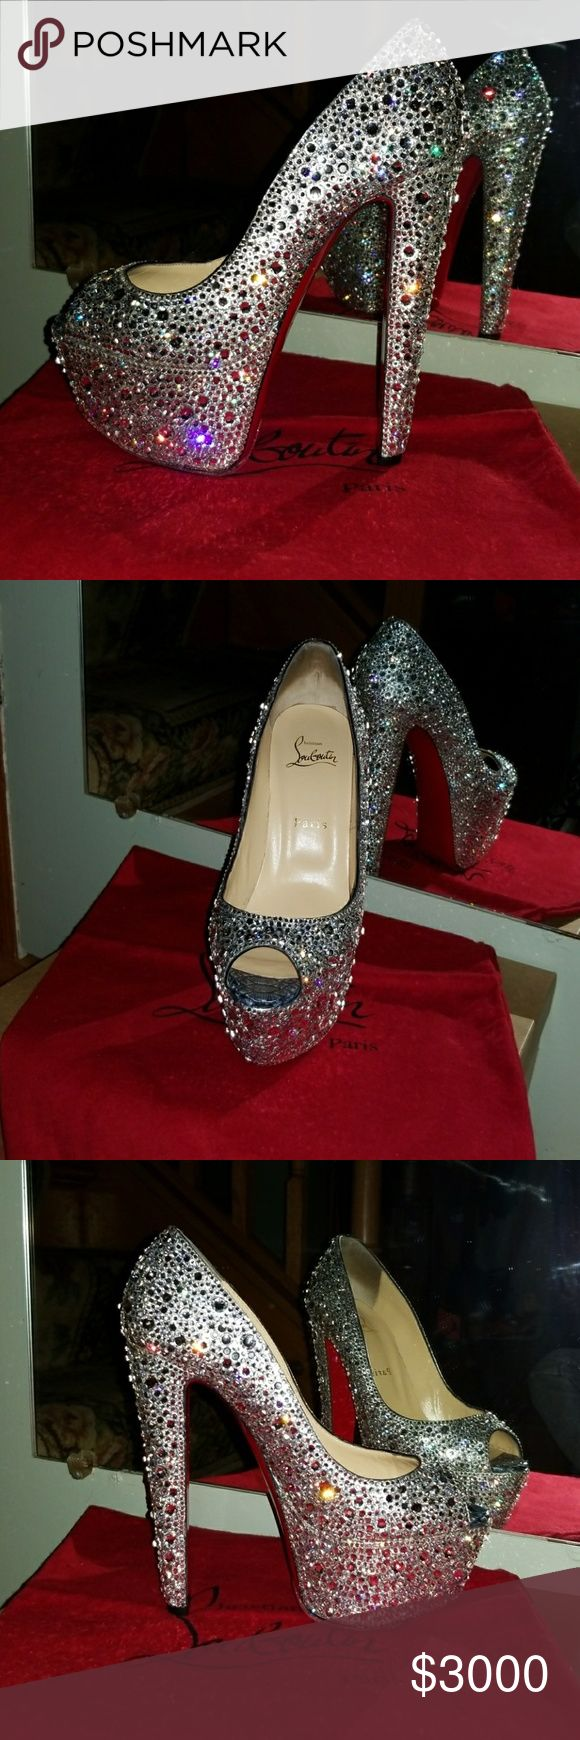 Christian louboutin Altareva 160 swarovski strass Authentic Christian louboutin altareva 160mm swarovski professional strass. Size 38.5 but RUN VERY SMALL fit 7-7.5 best! I'm a 6-6.5 as you can see they almost fit me. These were my sister's who passed away im not sure she ever wore them. There is a red sole protector with nice grip. There's no gaps in crystal or any missing. There's thousands of crystal on these.no trades! Excellent like new condition.sparkle like diamonds!Buy with…